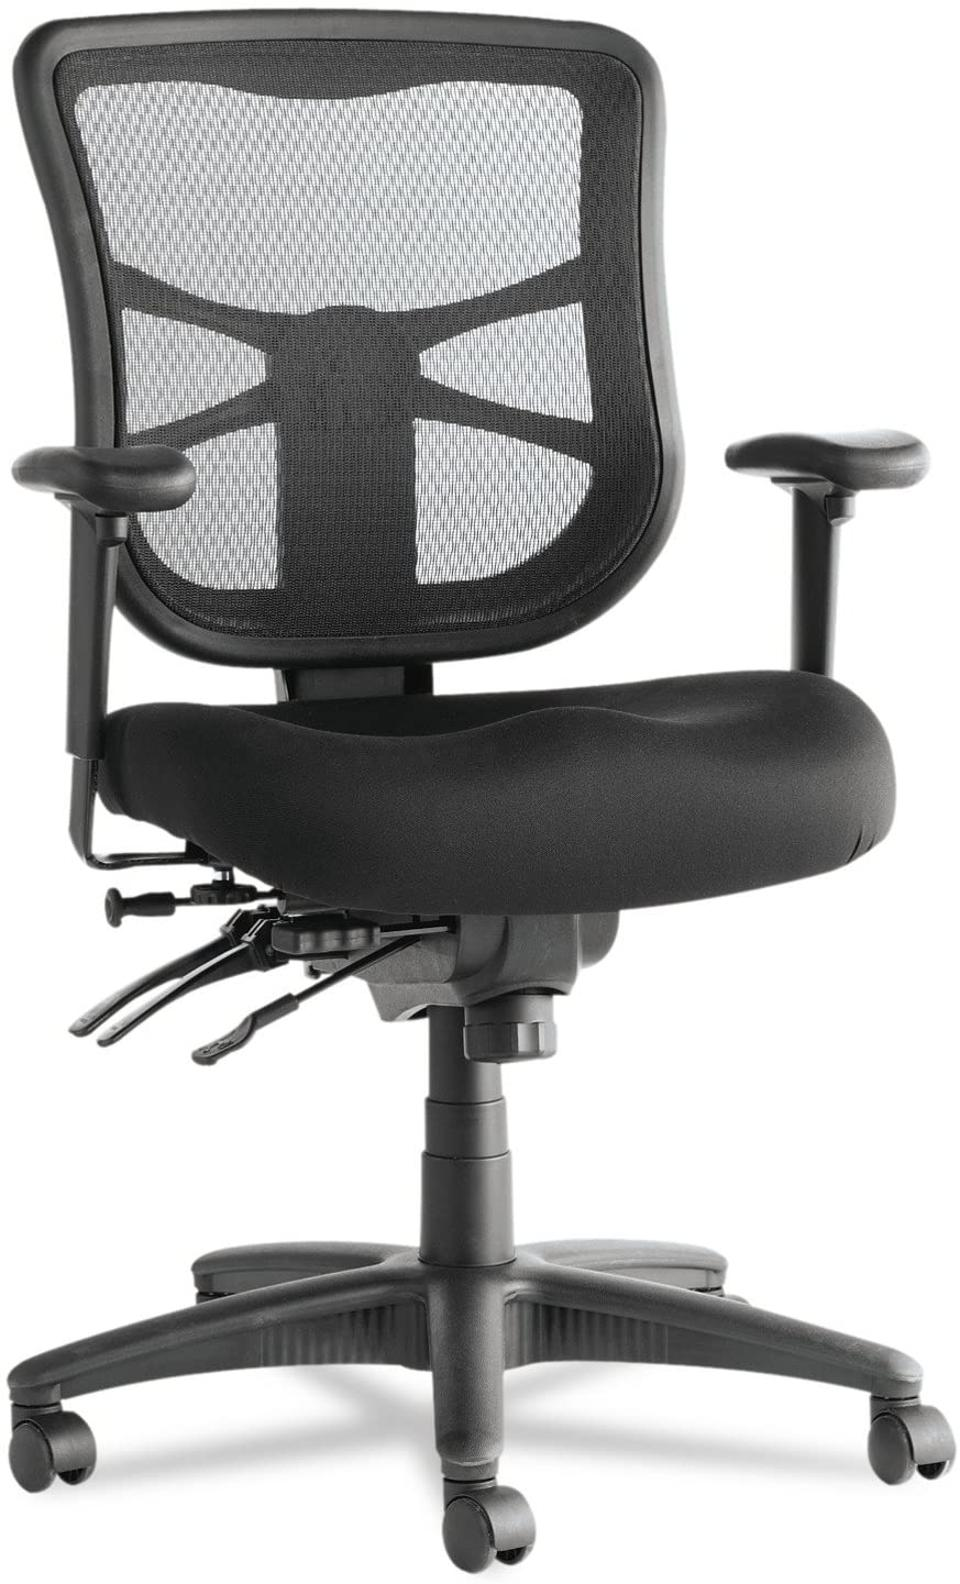 Alera Elusion Series Mesh Mid-Back Chair